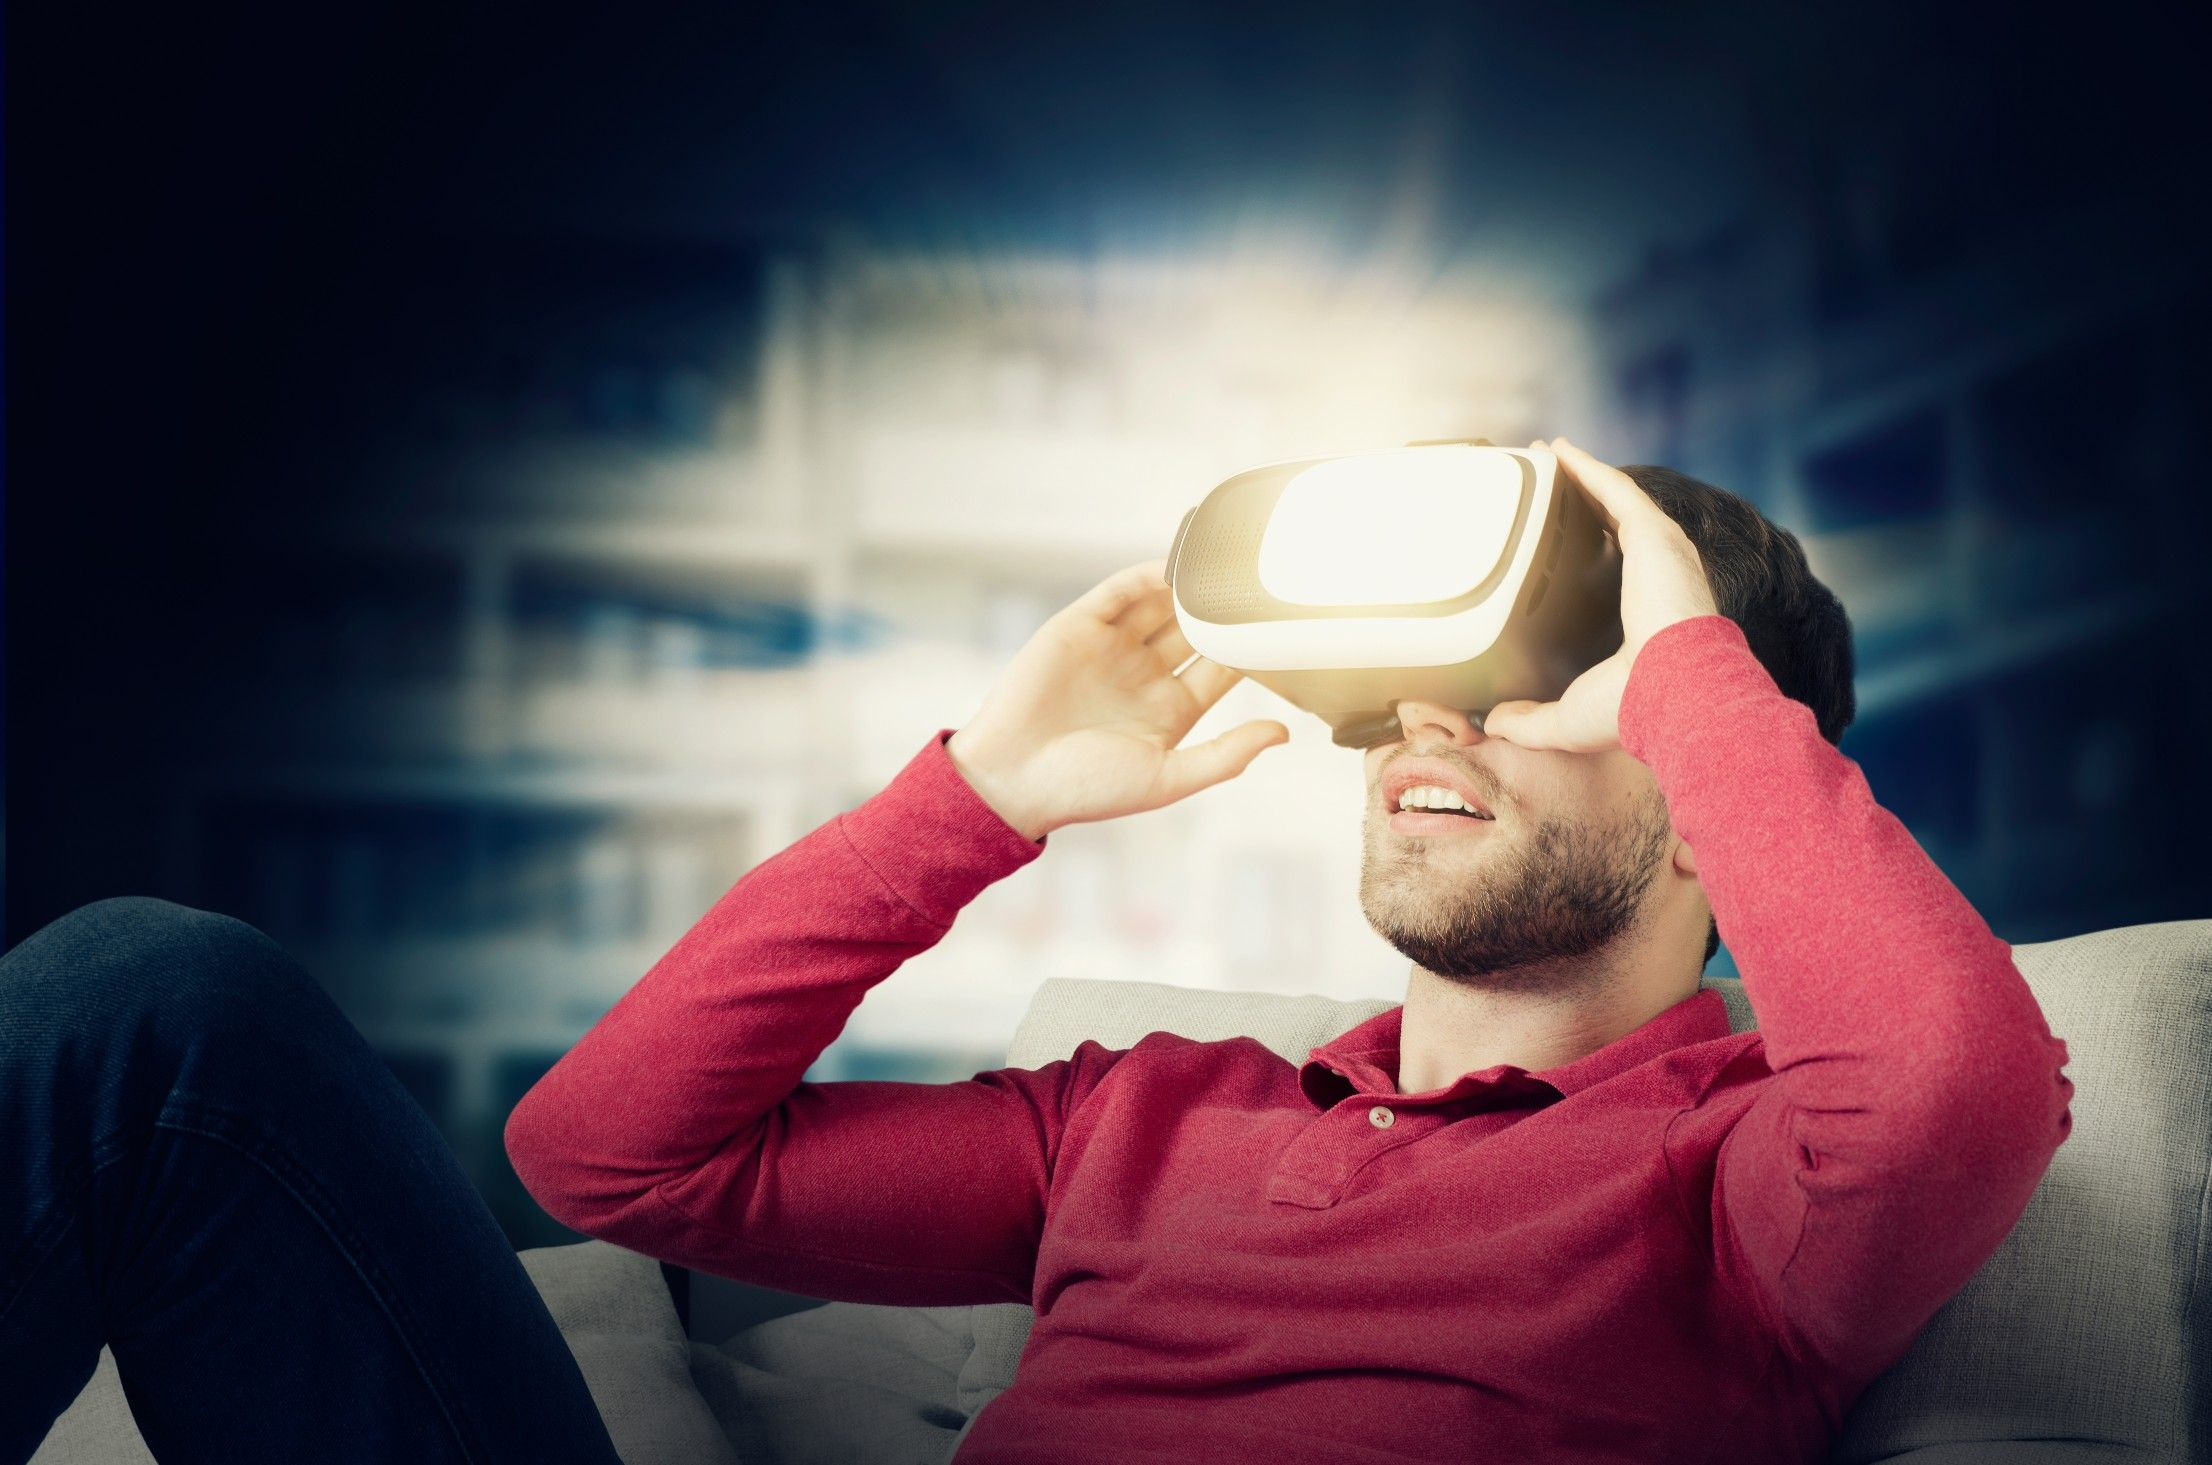 VR is the future! With VR apps, businesses, games, movies